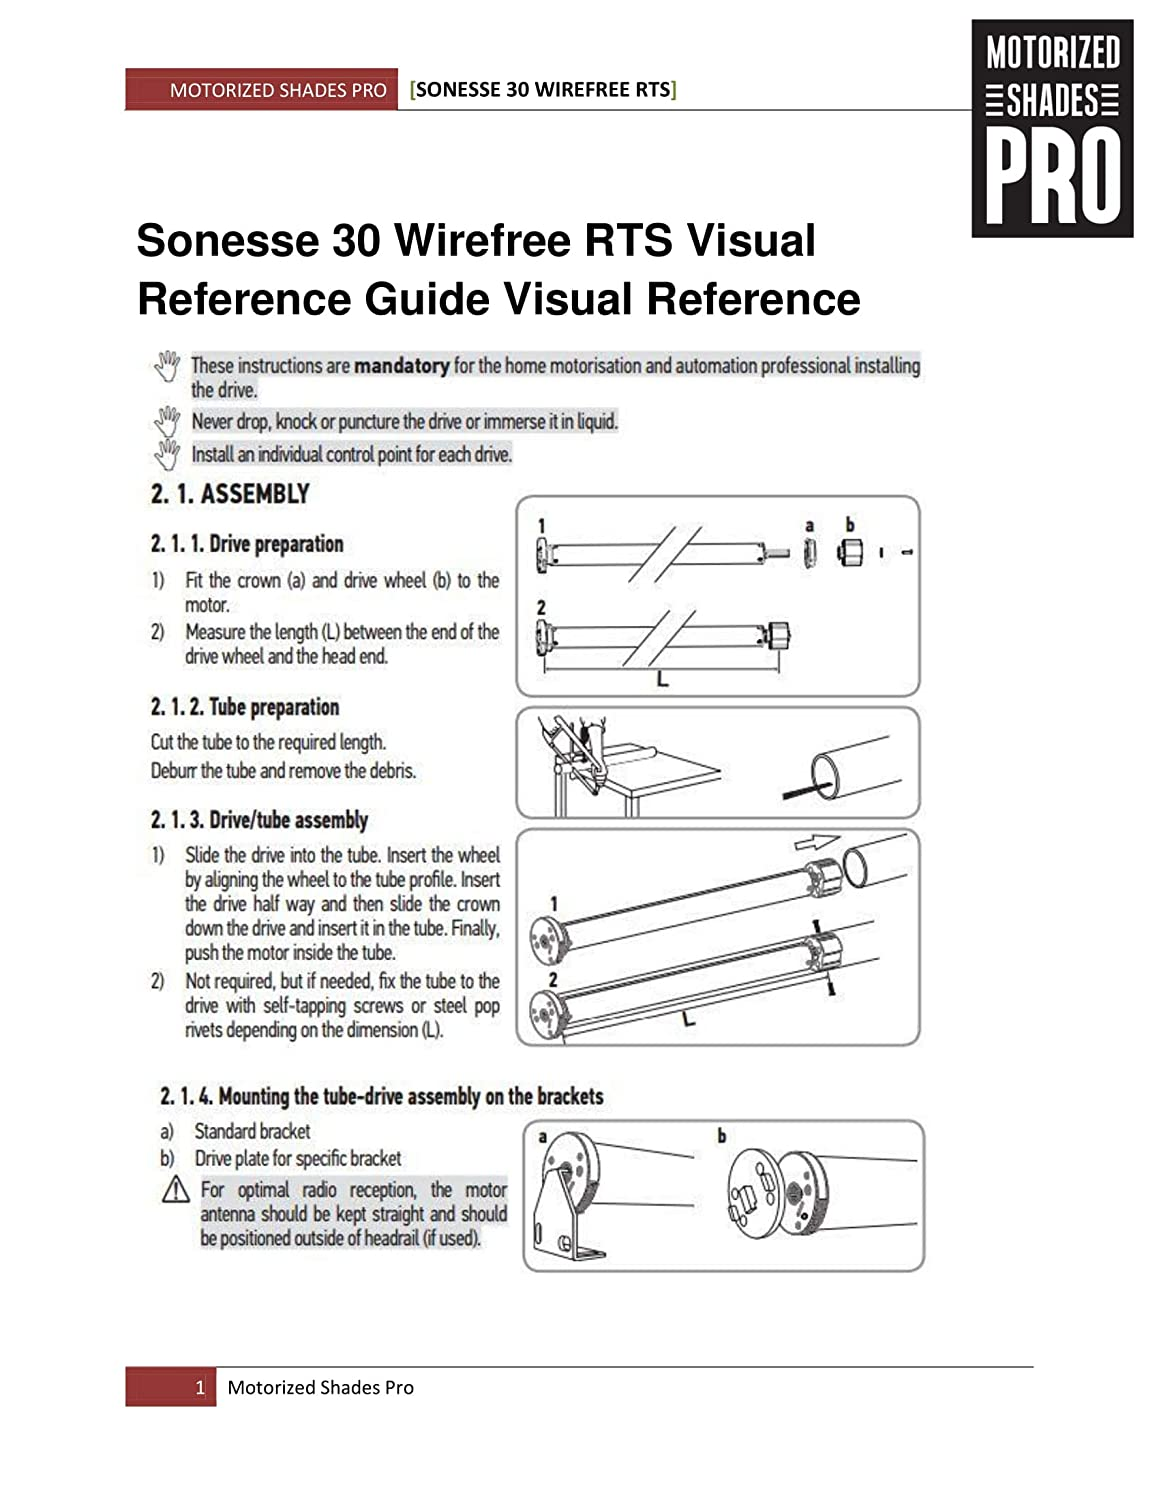 Amazon.com: Somfy Sonesse 30 WireFree RTS 1003128: Home & Kitchen on electrical diagrams, pinout diagrams, lighting diagrams, snatch block diagrams, series and parallel circuits diagrams, honda motorcycle repair diagrams, engine diagrams, transformer diagrams, friendship bracelet diagrams, electronic circuit diagrams, led circuit diagrams, hvac diagrams, motor diagrams, smart car diagrams, switch diagrams, battery diagrams, gmc fuse box diagrams, internet of things diagrams, troubleshooting diagrams, sincgars radio configurations diagrams,